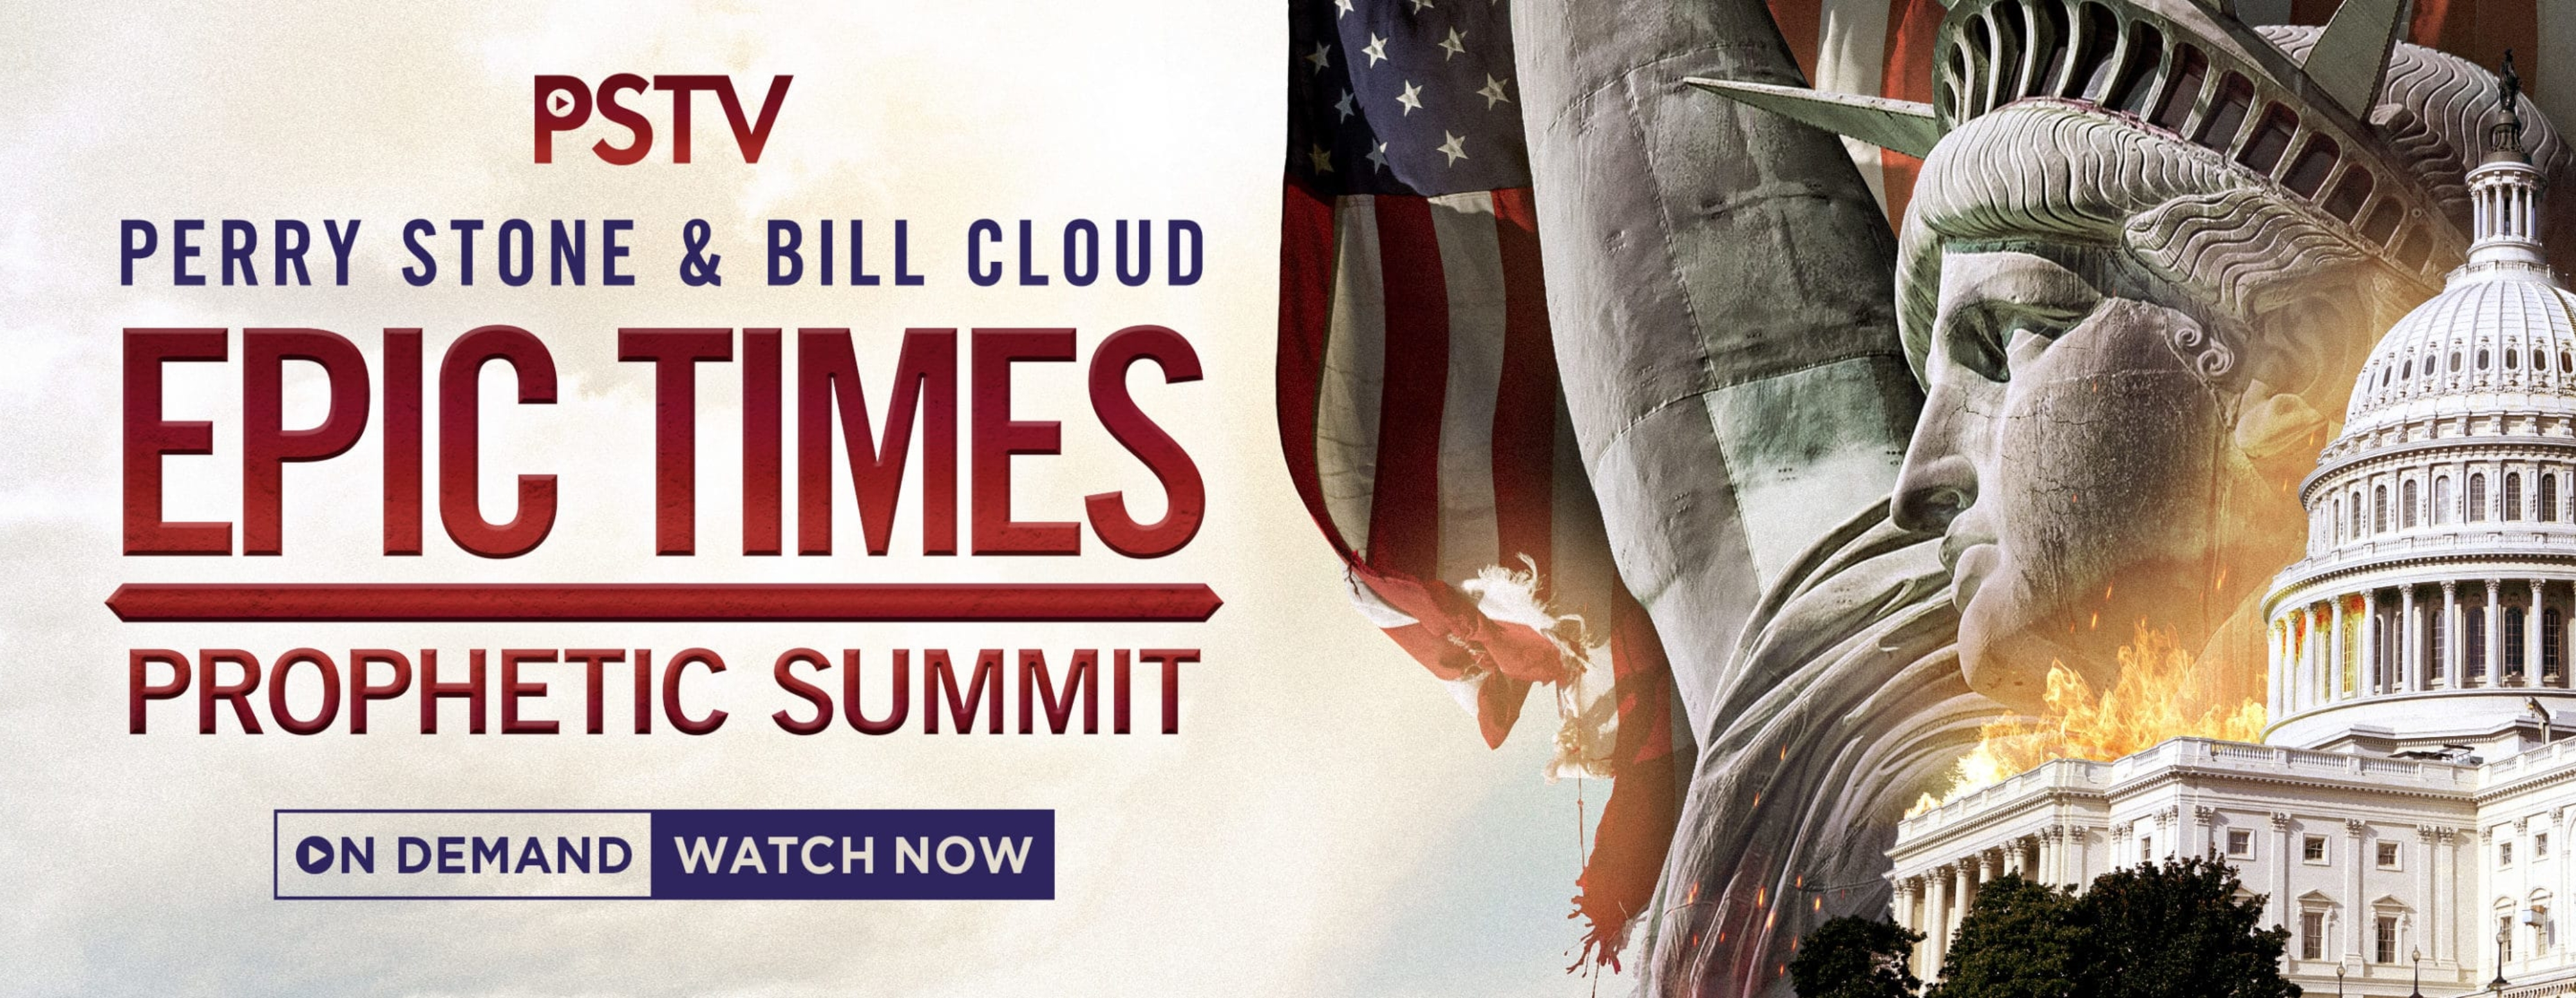 2020 Epic Times Prophetic Summit On Demand – Website Banner